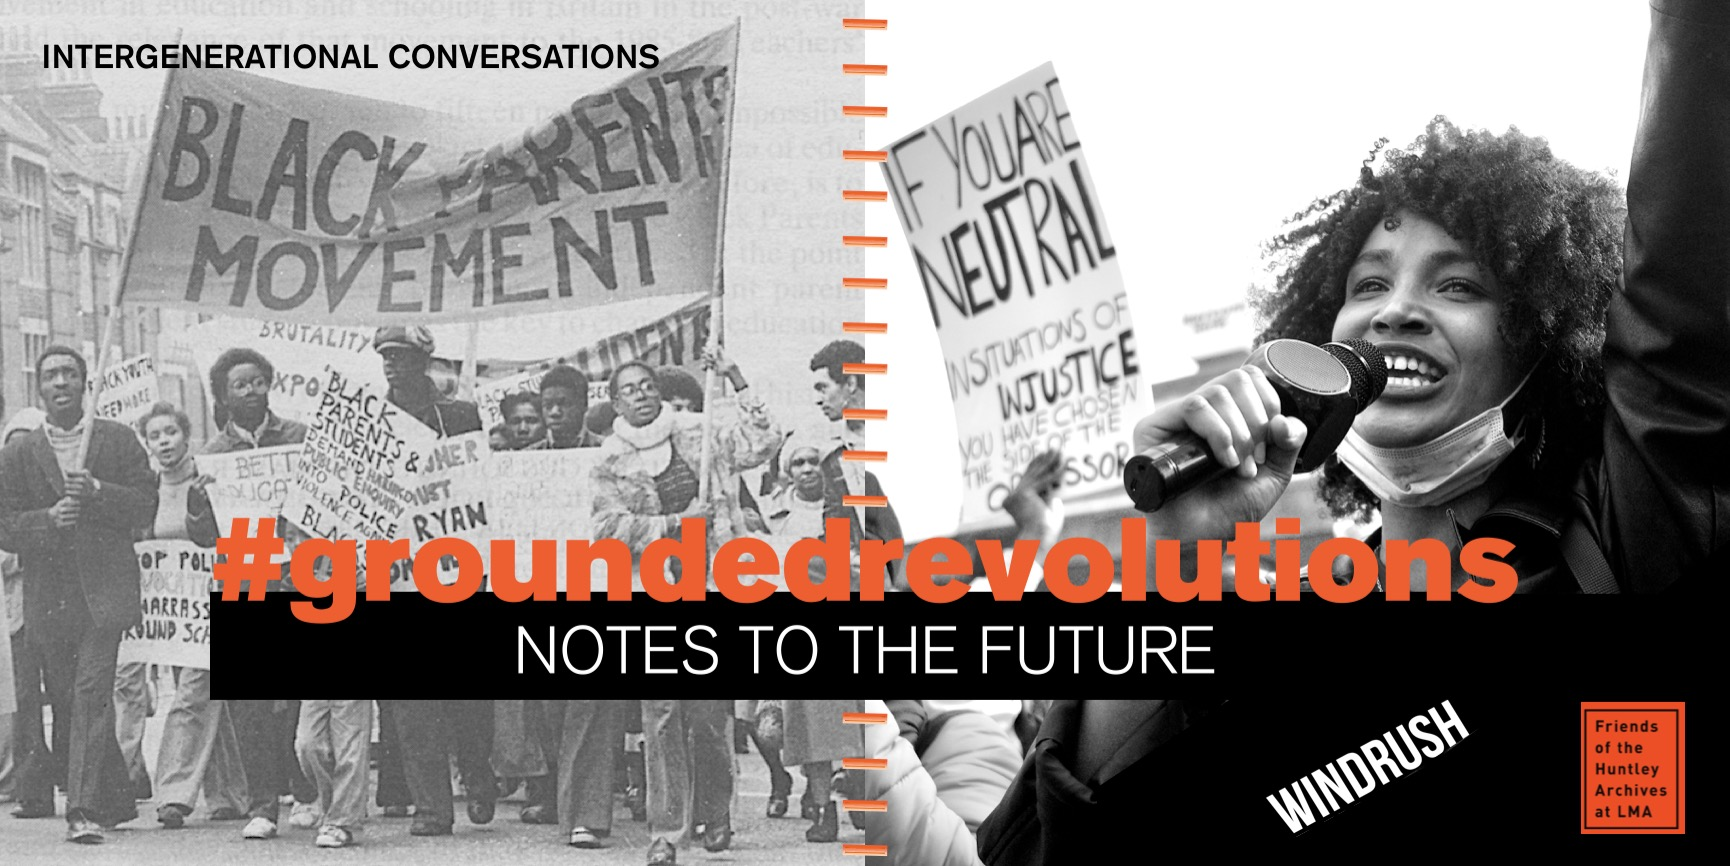 Event Image for Grounded Revolutions Notes to the Future